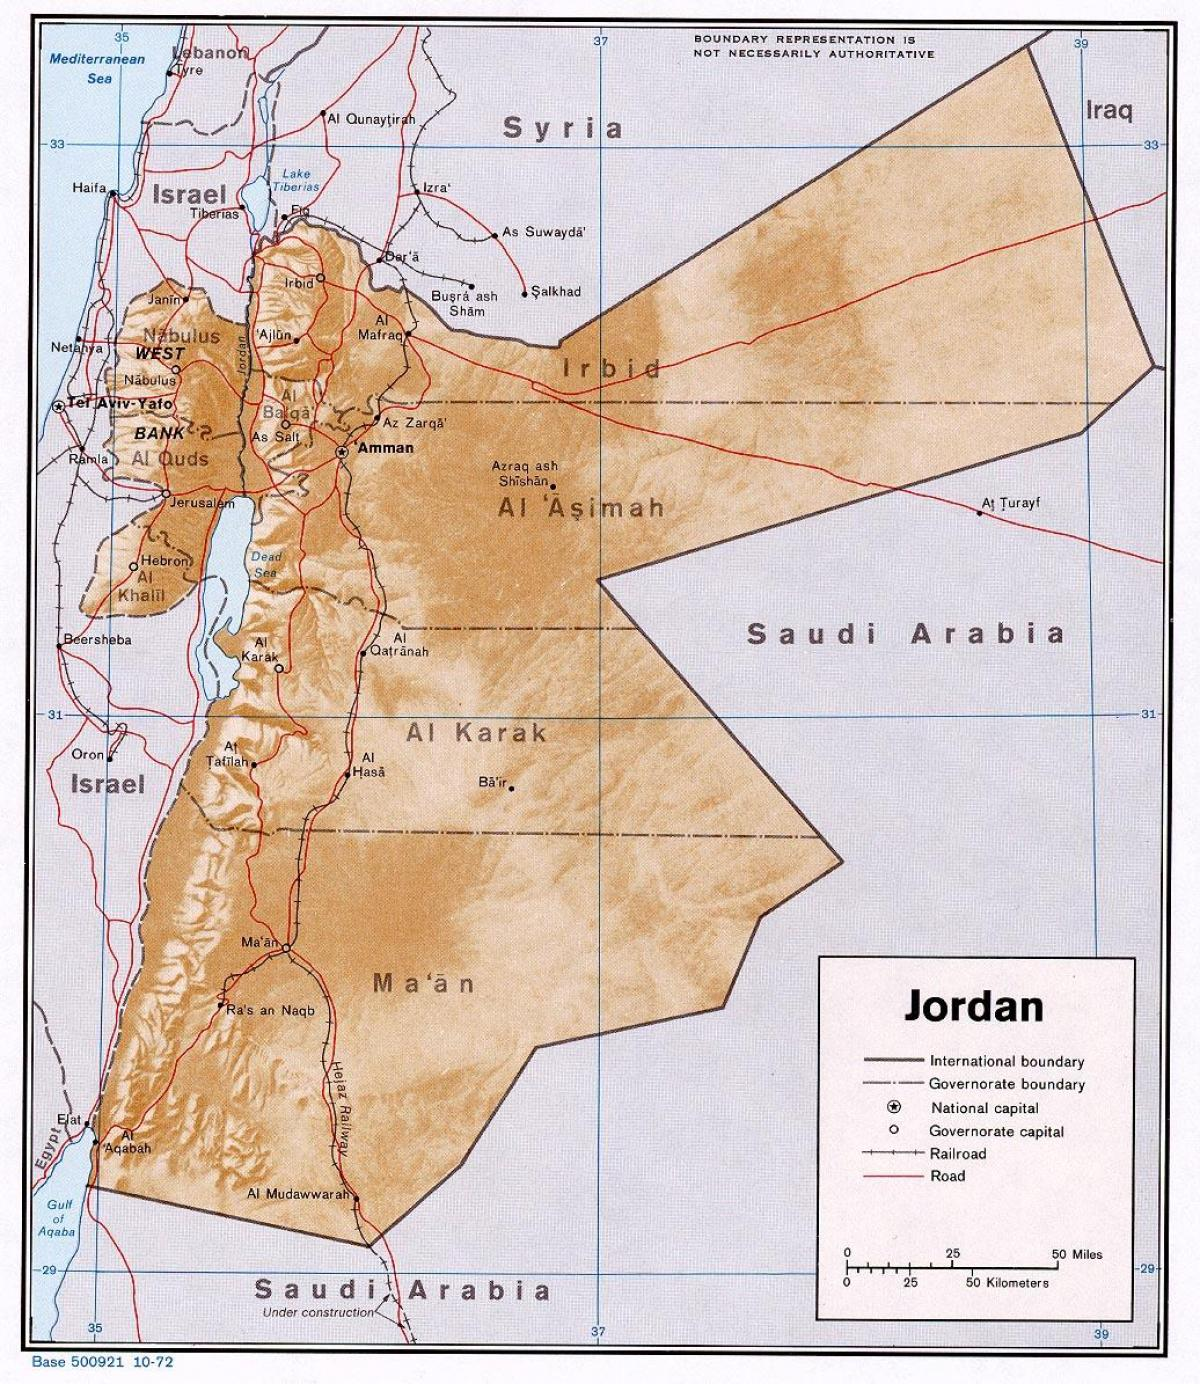 map showing Jordan